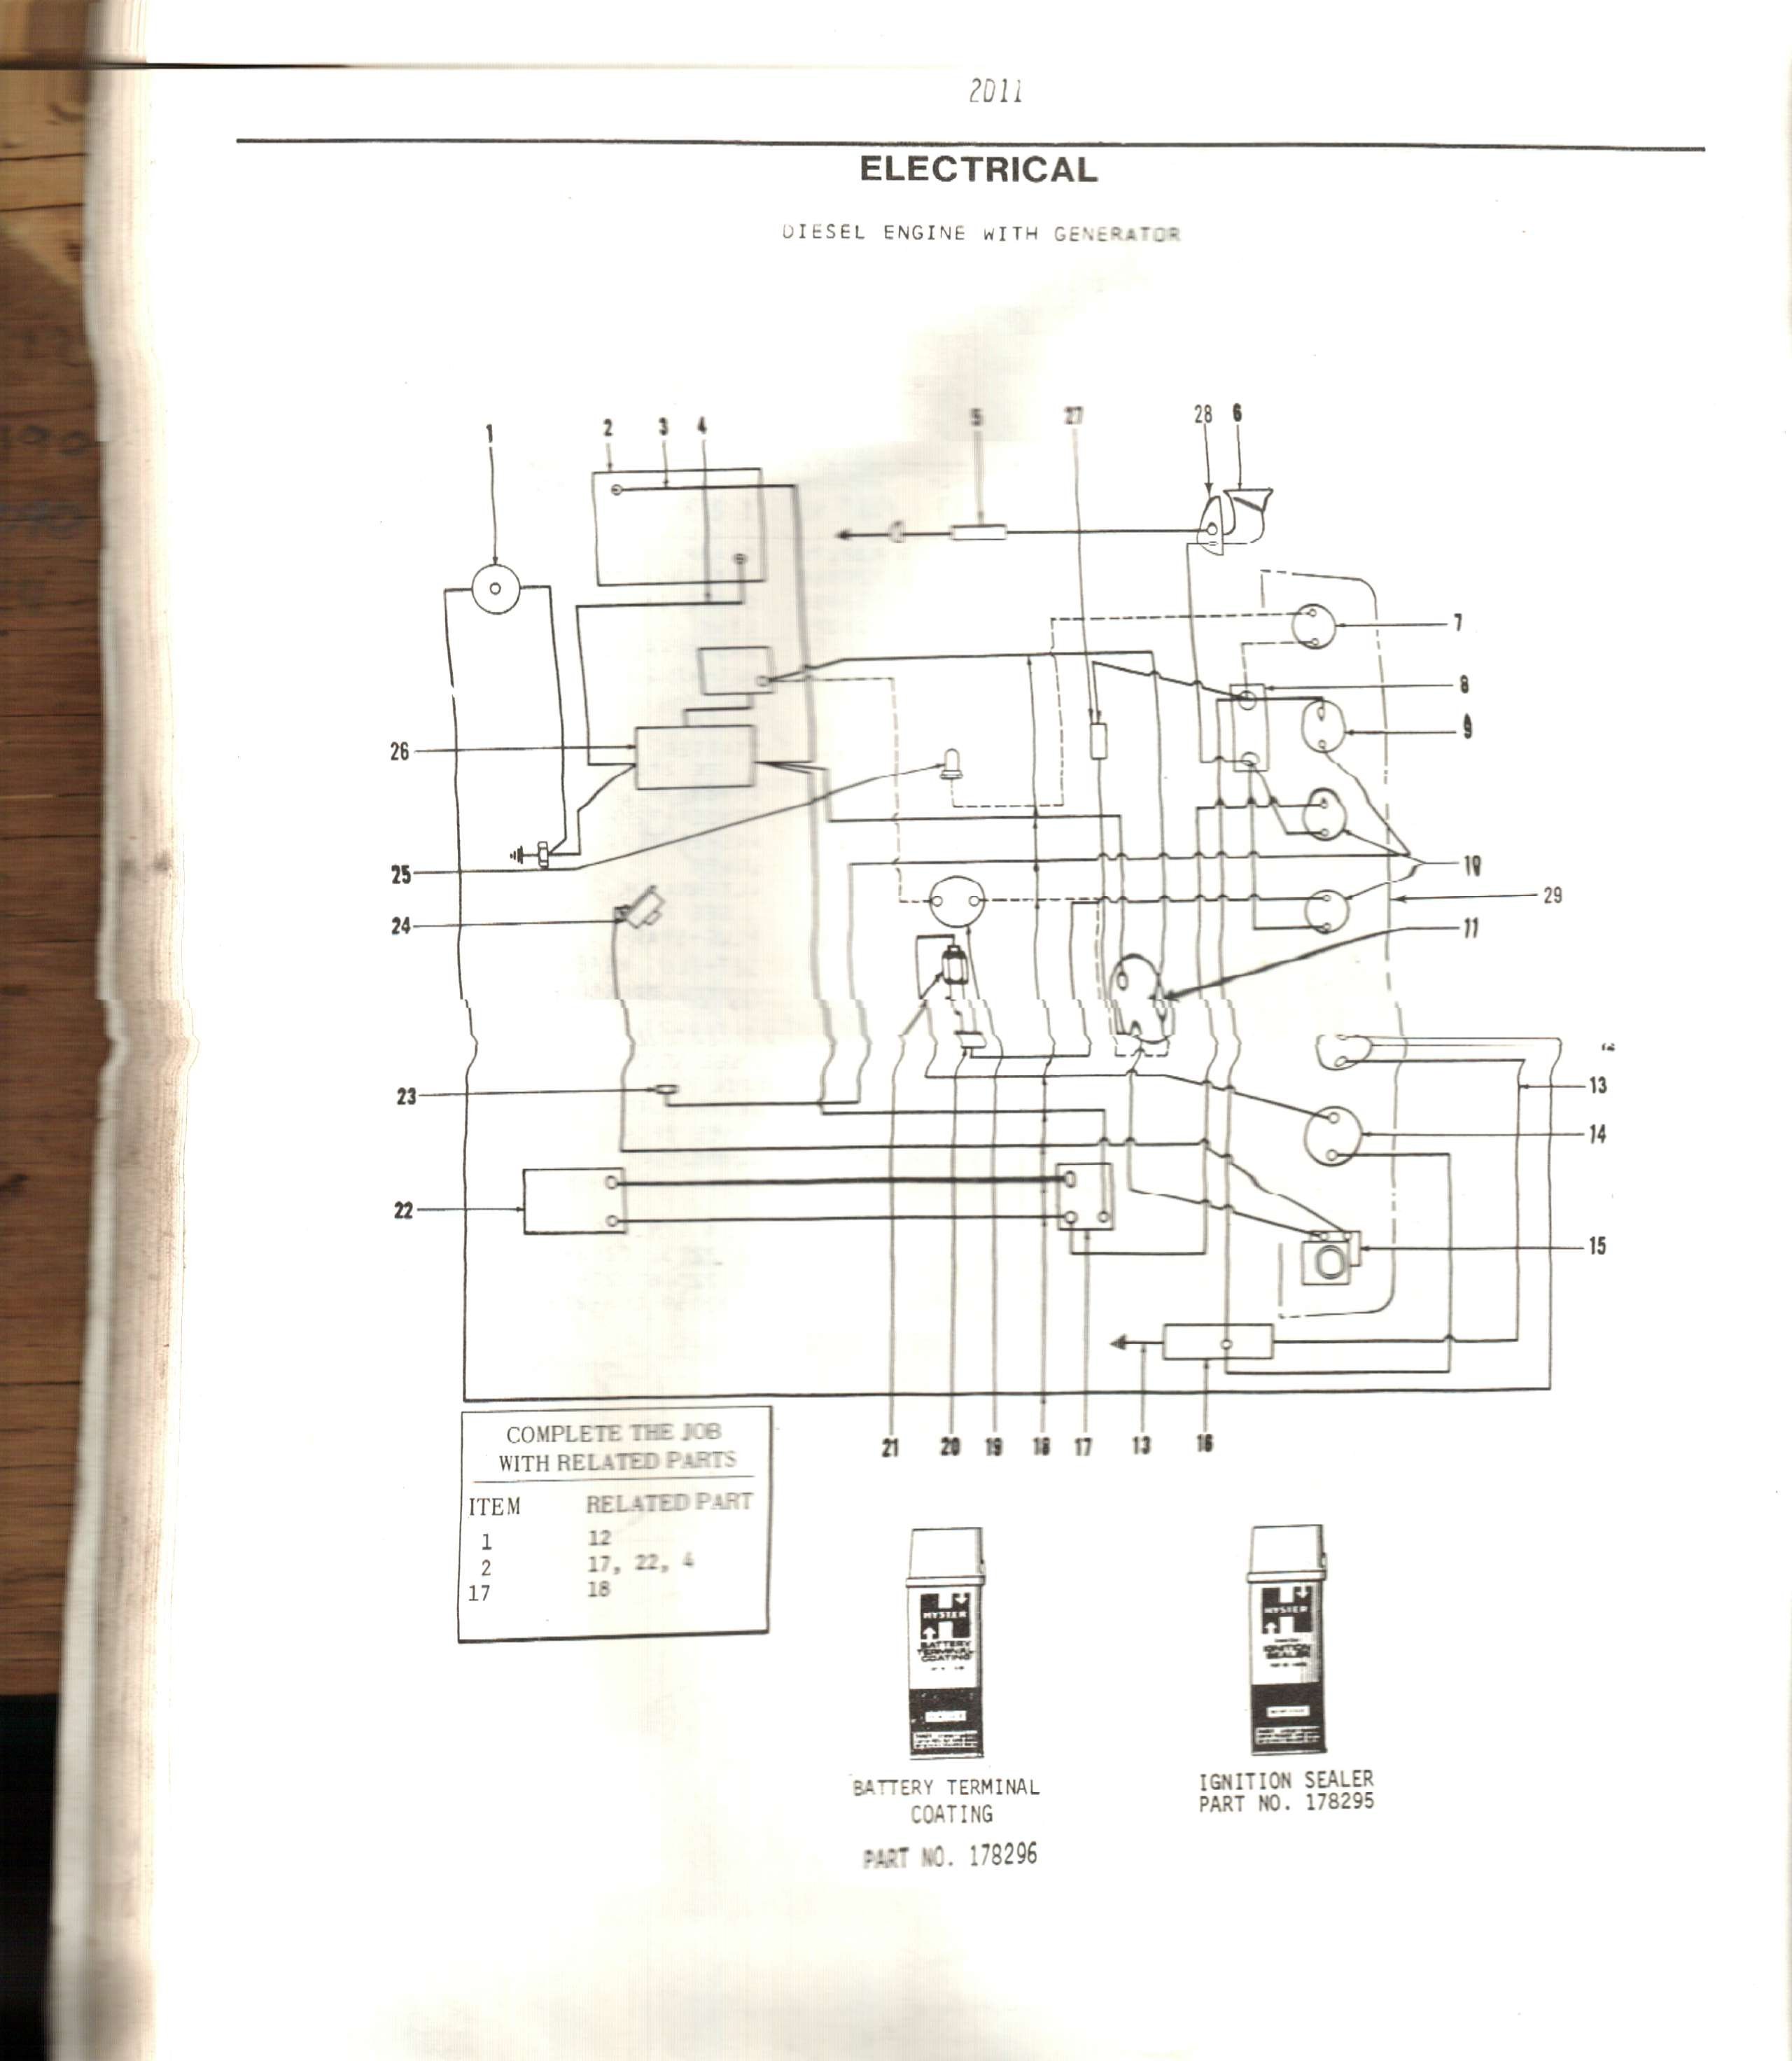 hyster 80 forklift owners manual